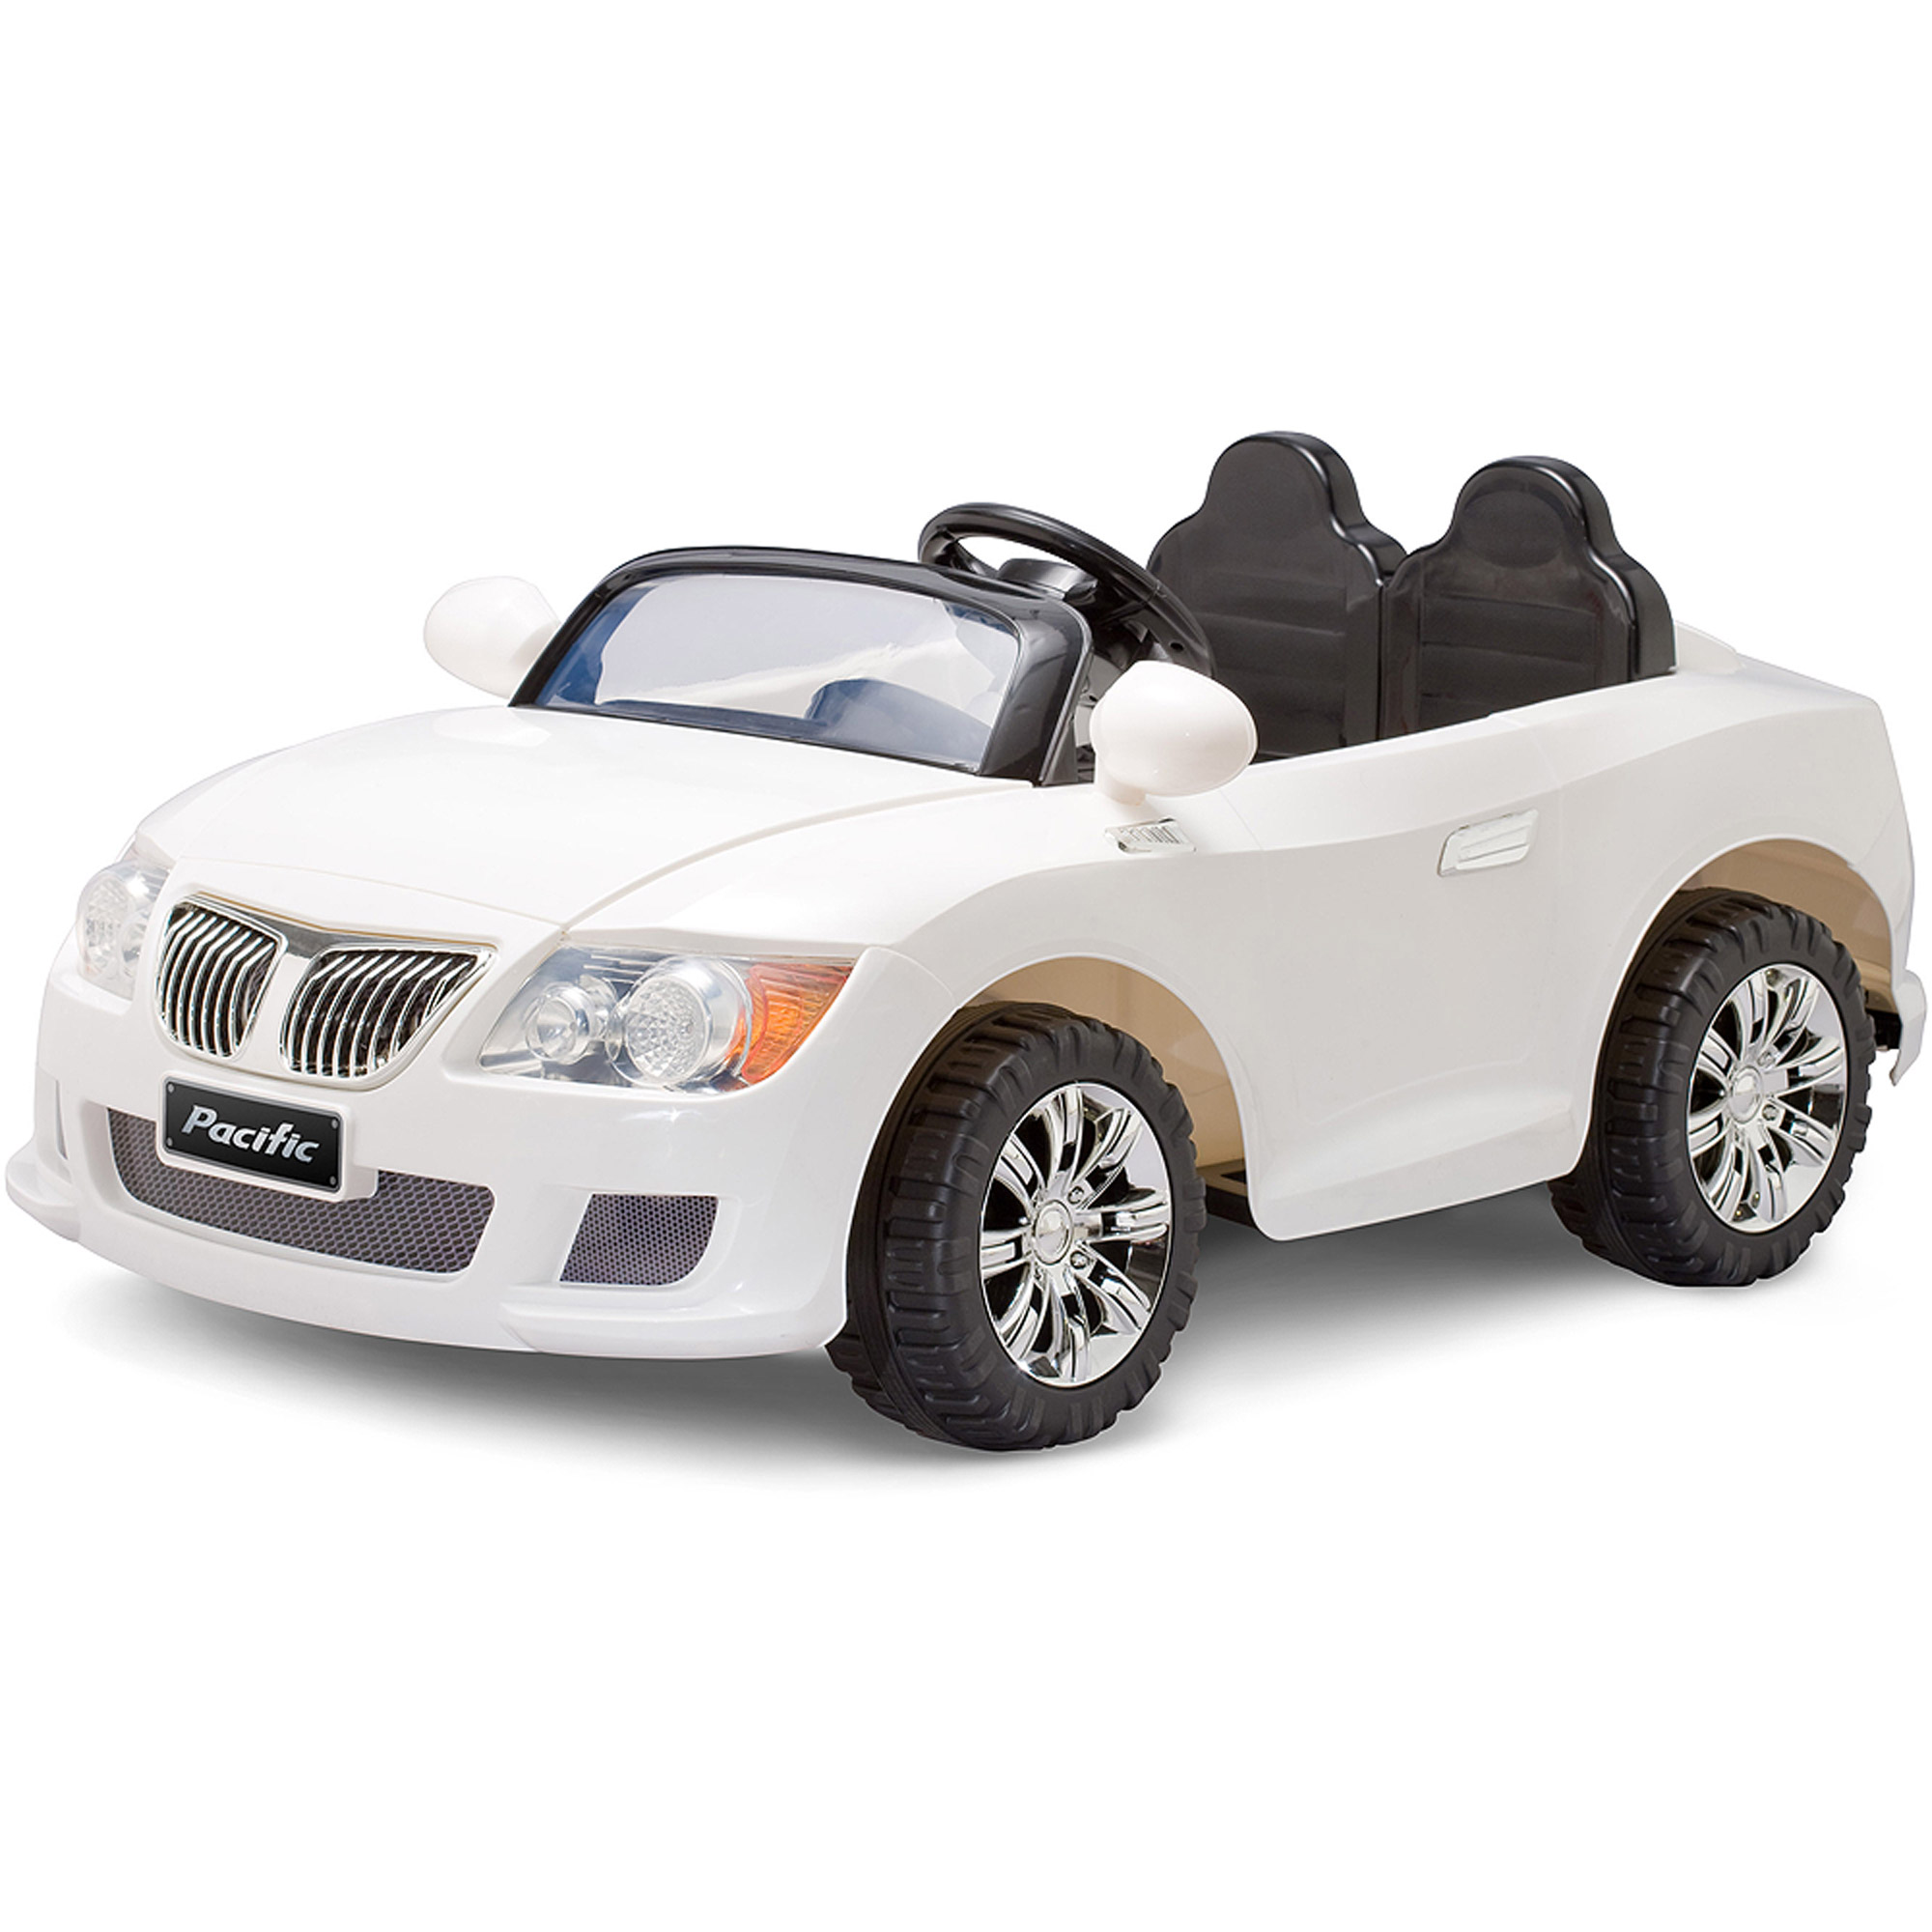 pacific cycle convertible sports car 12v battery powered white walmart